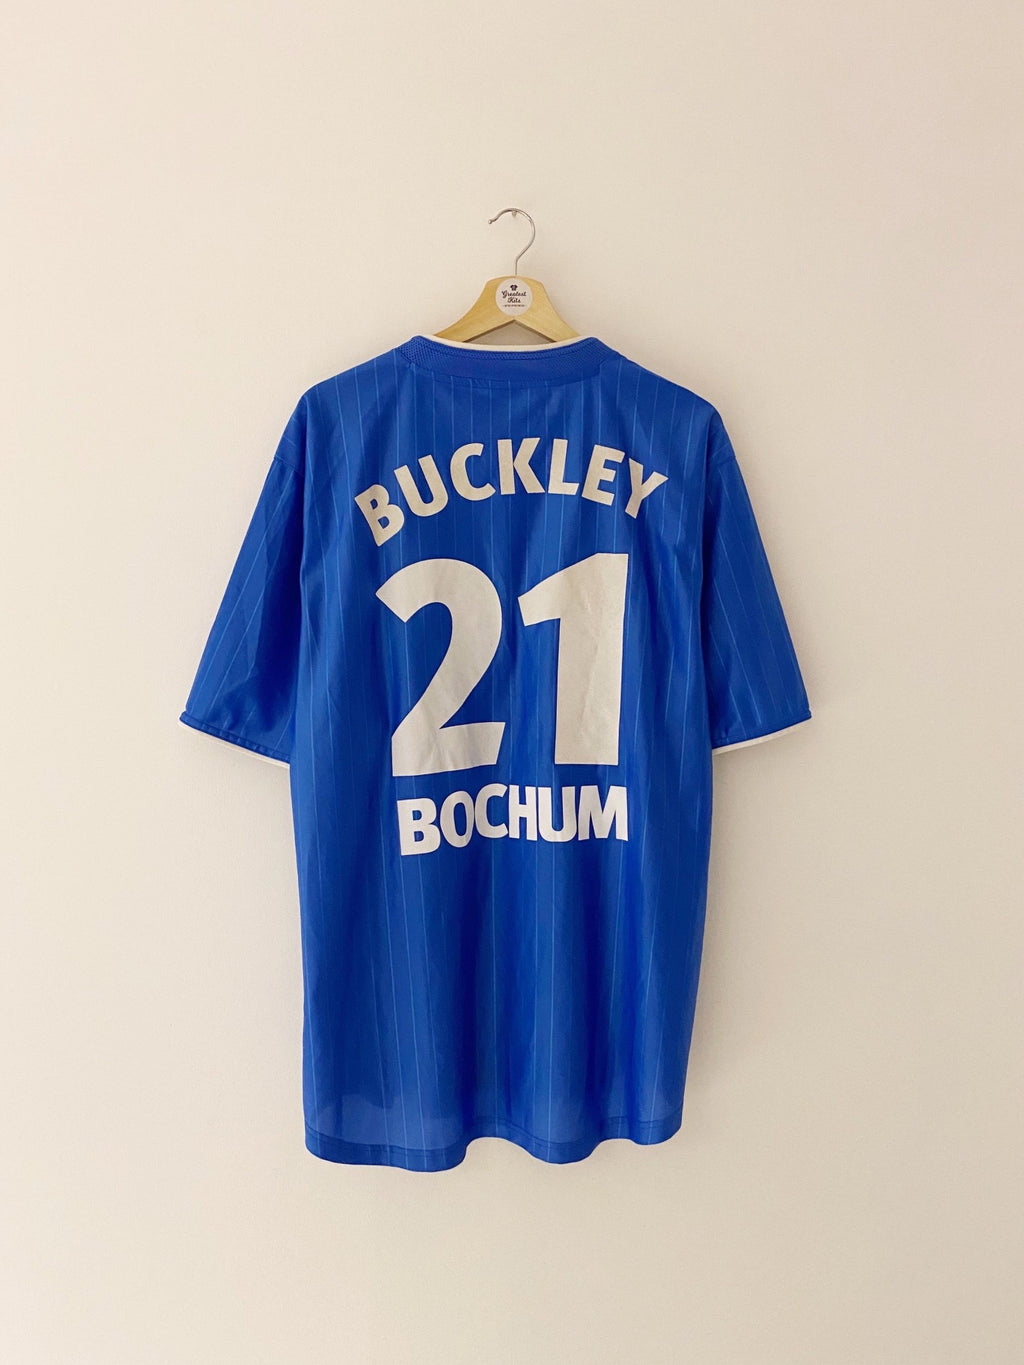 2002/03 VfL Bochum Home Shirt Buckley #21 (XL) 9/10